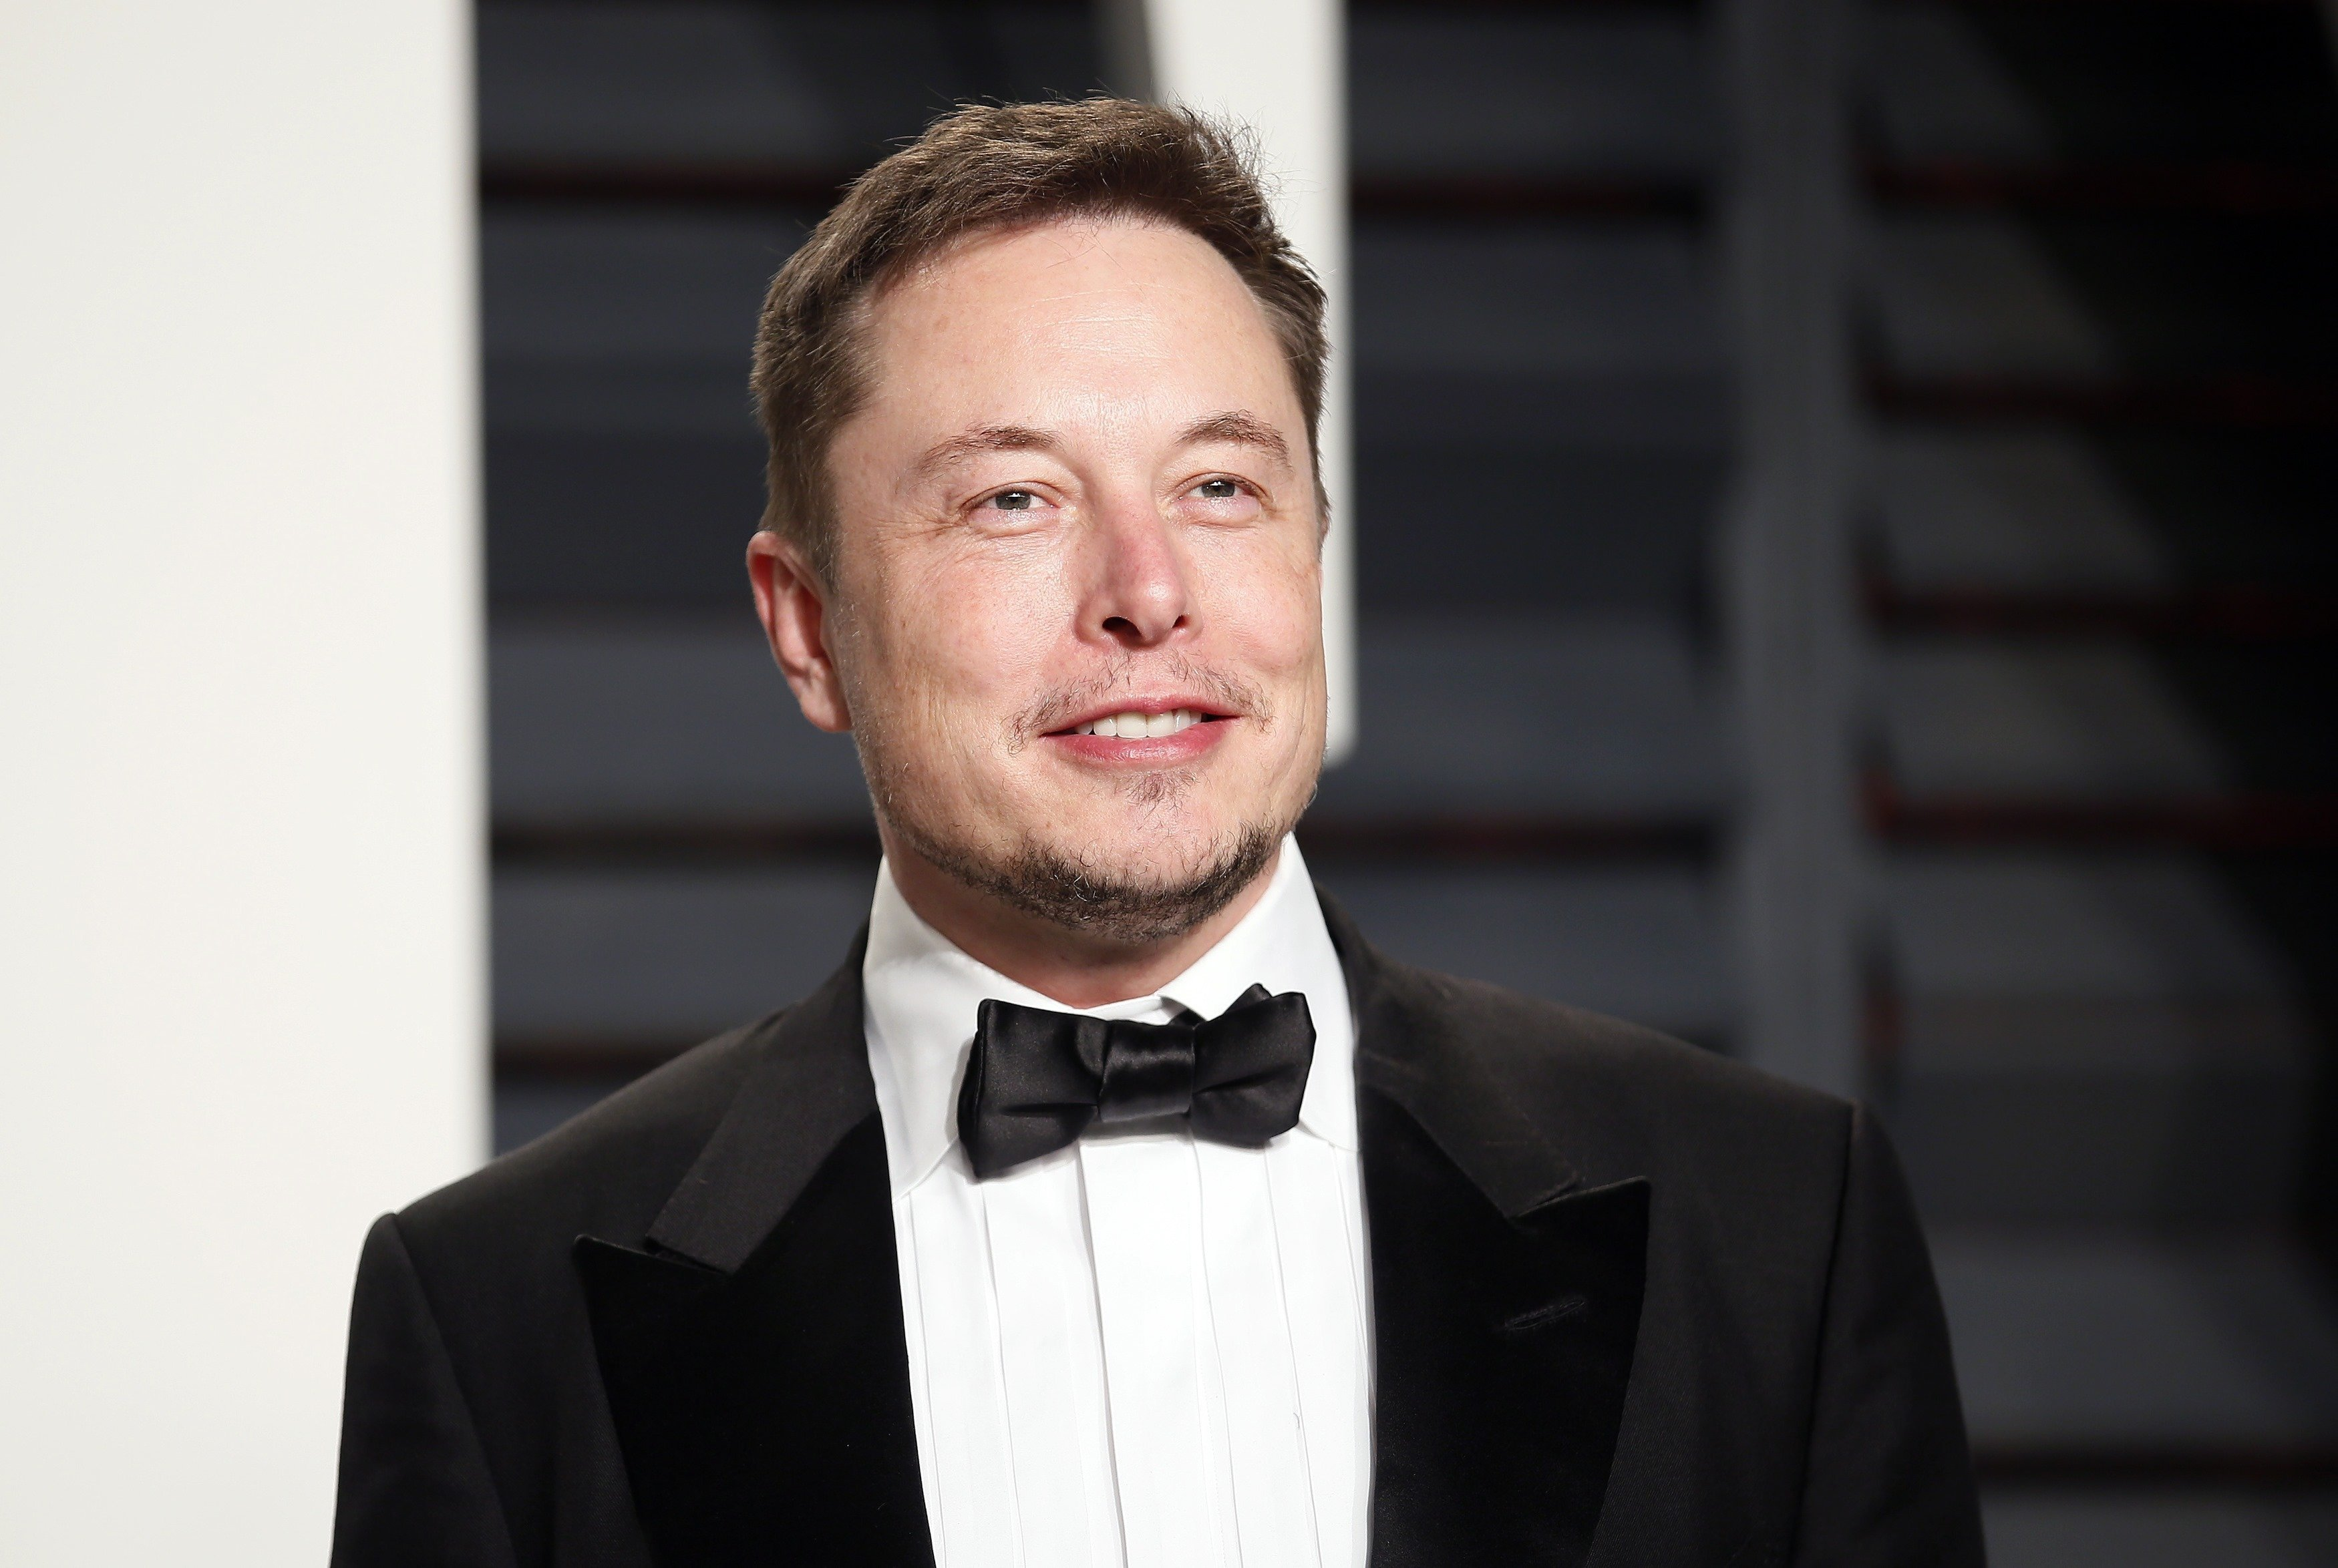 What does Elon Musk think about cryptocurrency?